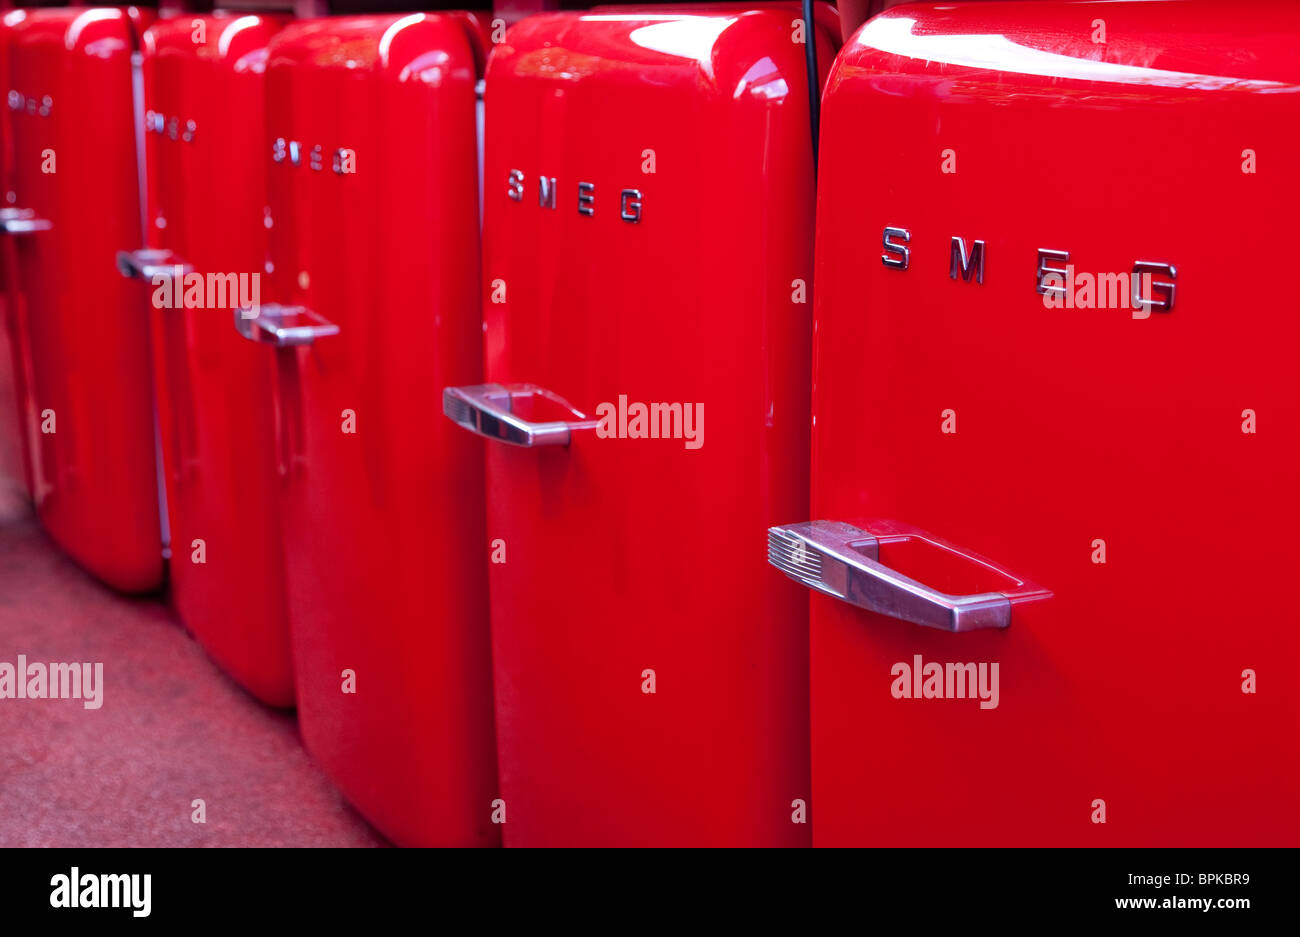 Smeg Stockfotos & Smeg Bilder - Alamy